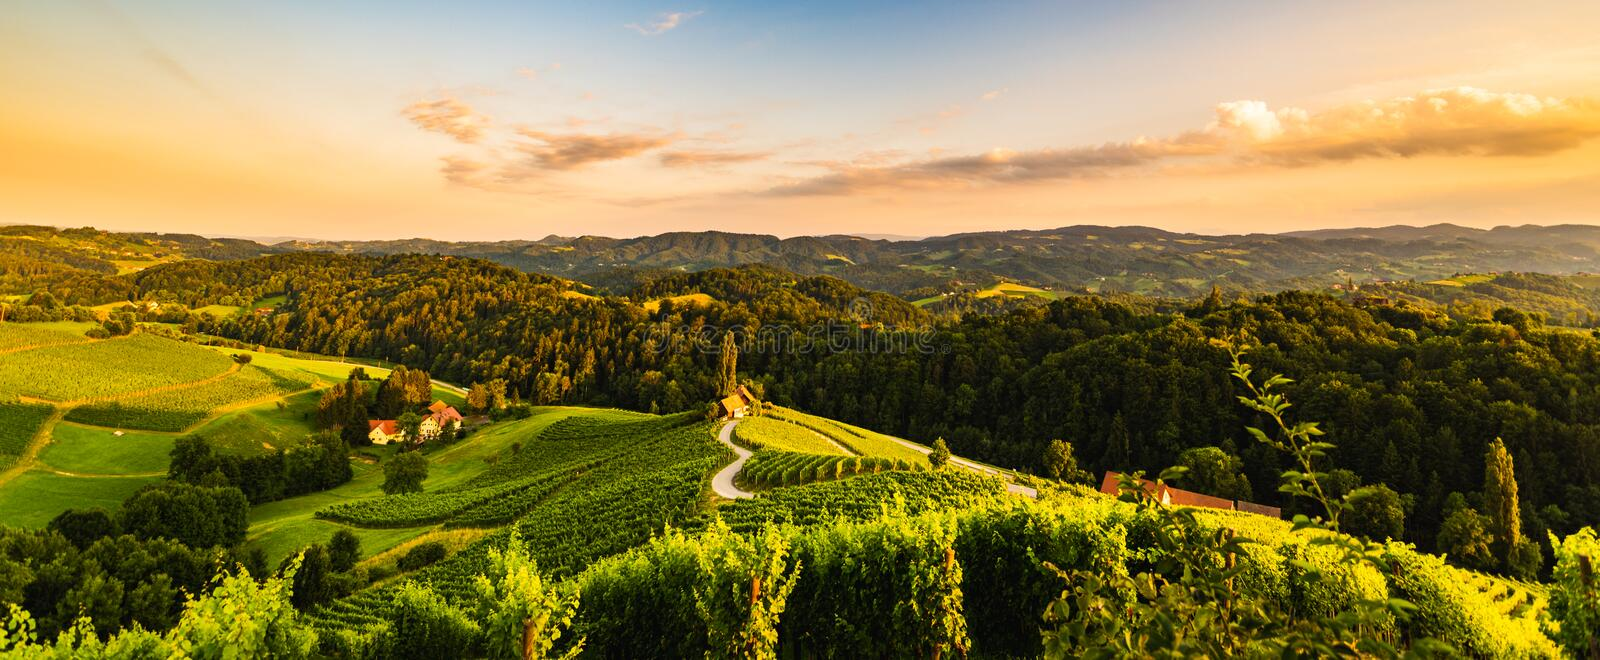 Famous heart shaped street at vineyards in Slovenia close to the border with Austria south styria. Tourist destination, spicnik, sulztal, gamlitz, ripe, season stock photos